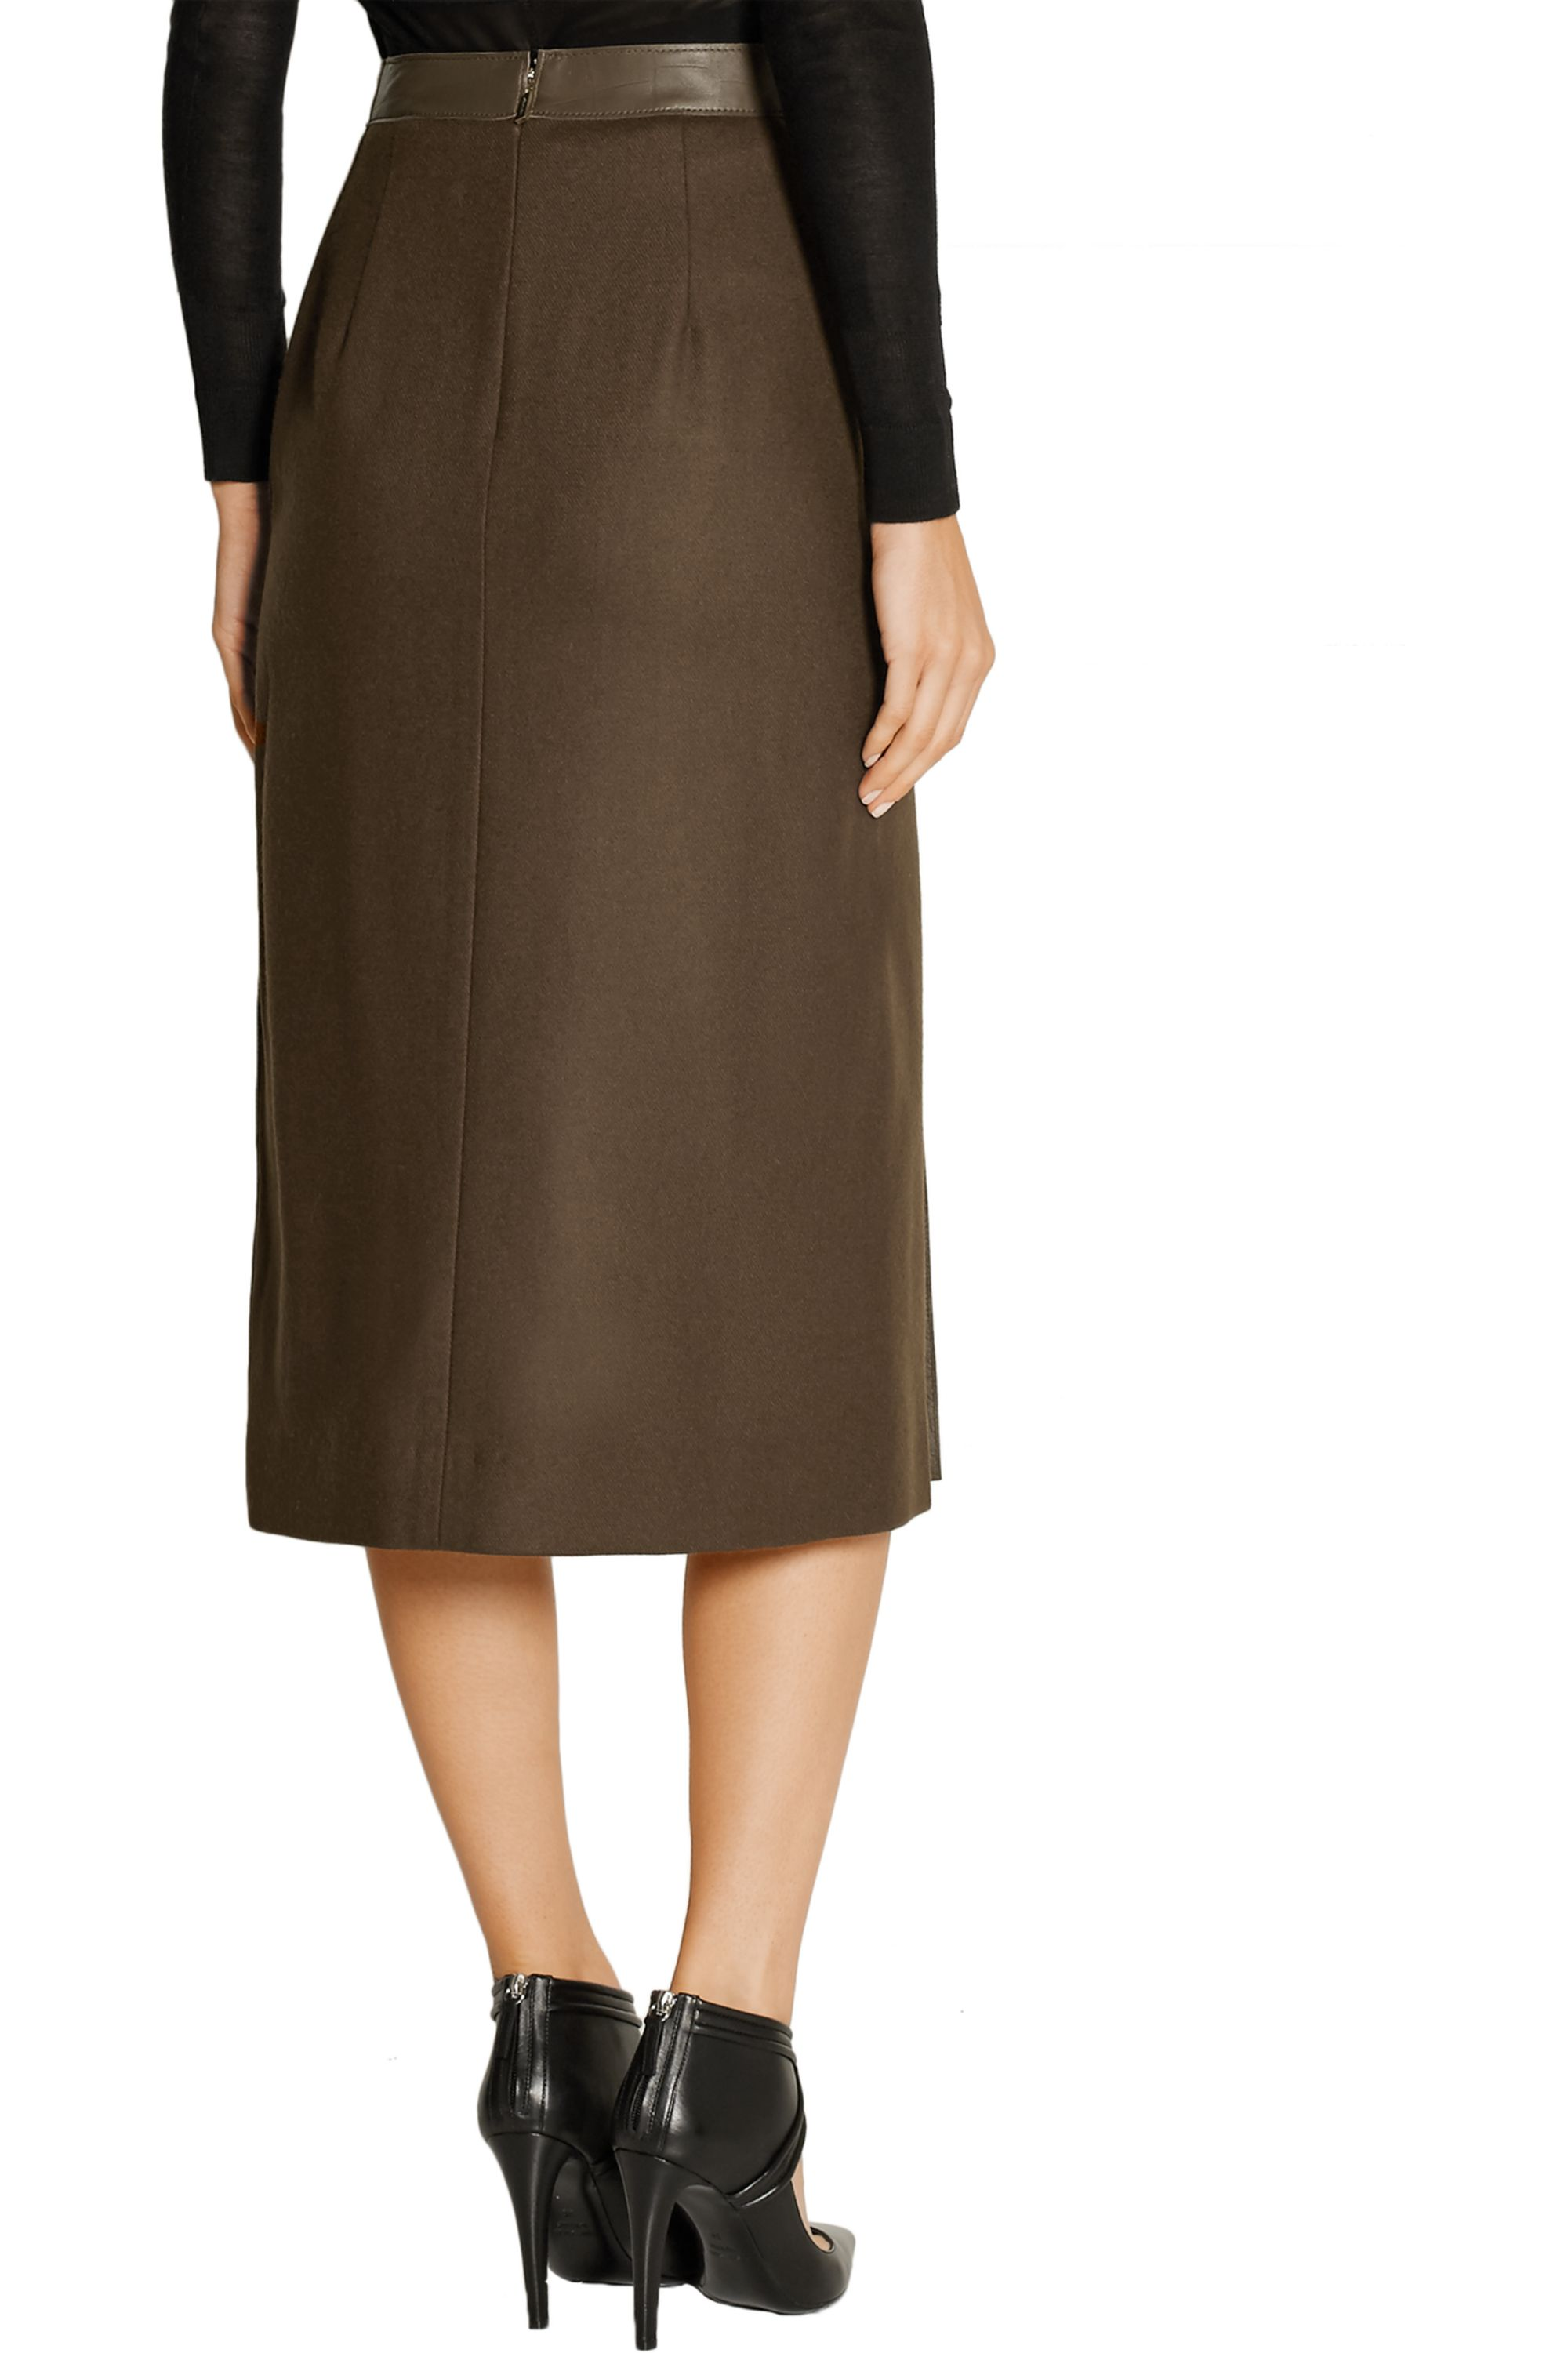 Jason Wu Collection Croc-effect leather and wool midi skirt